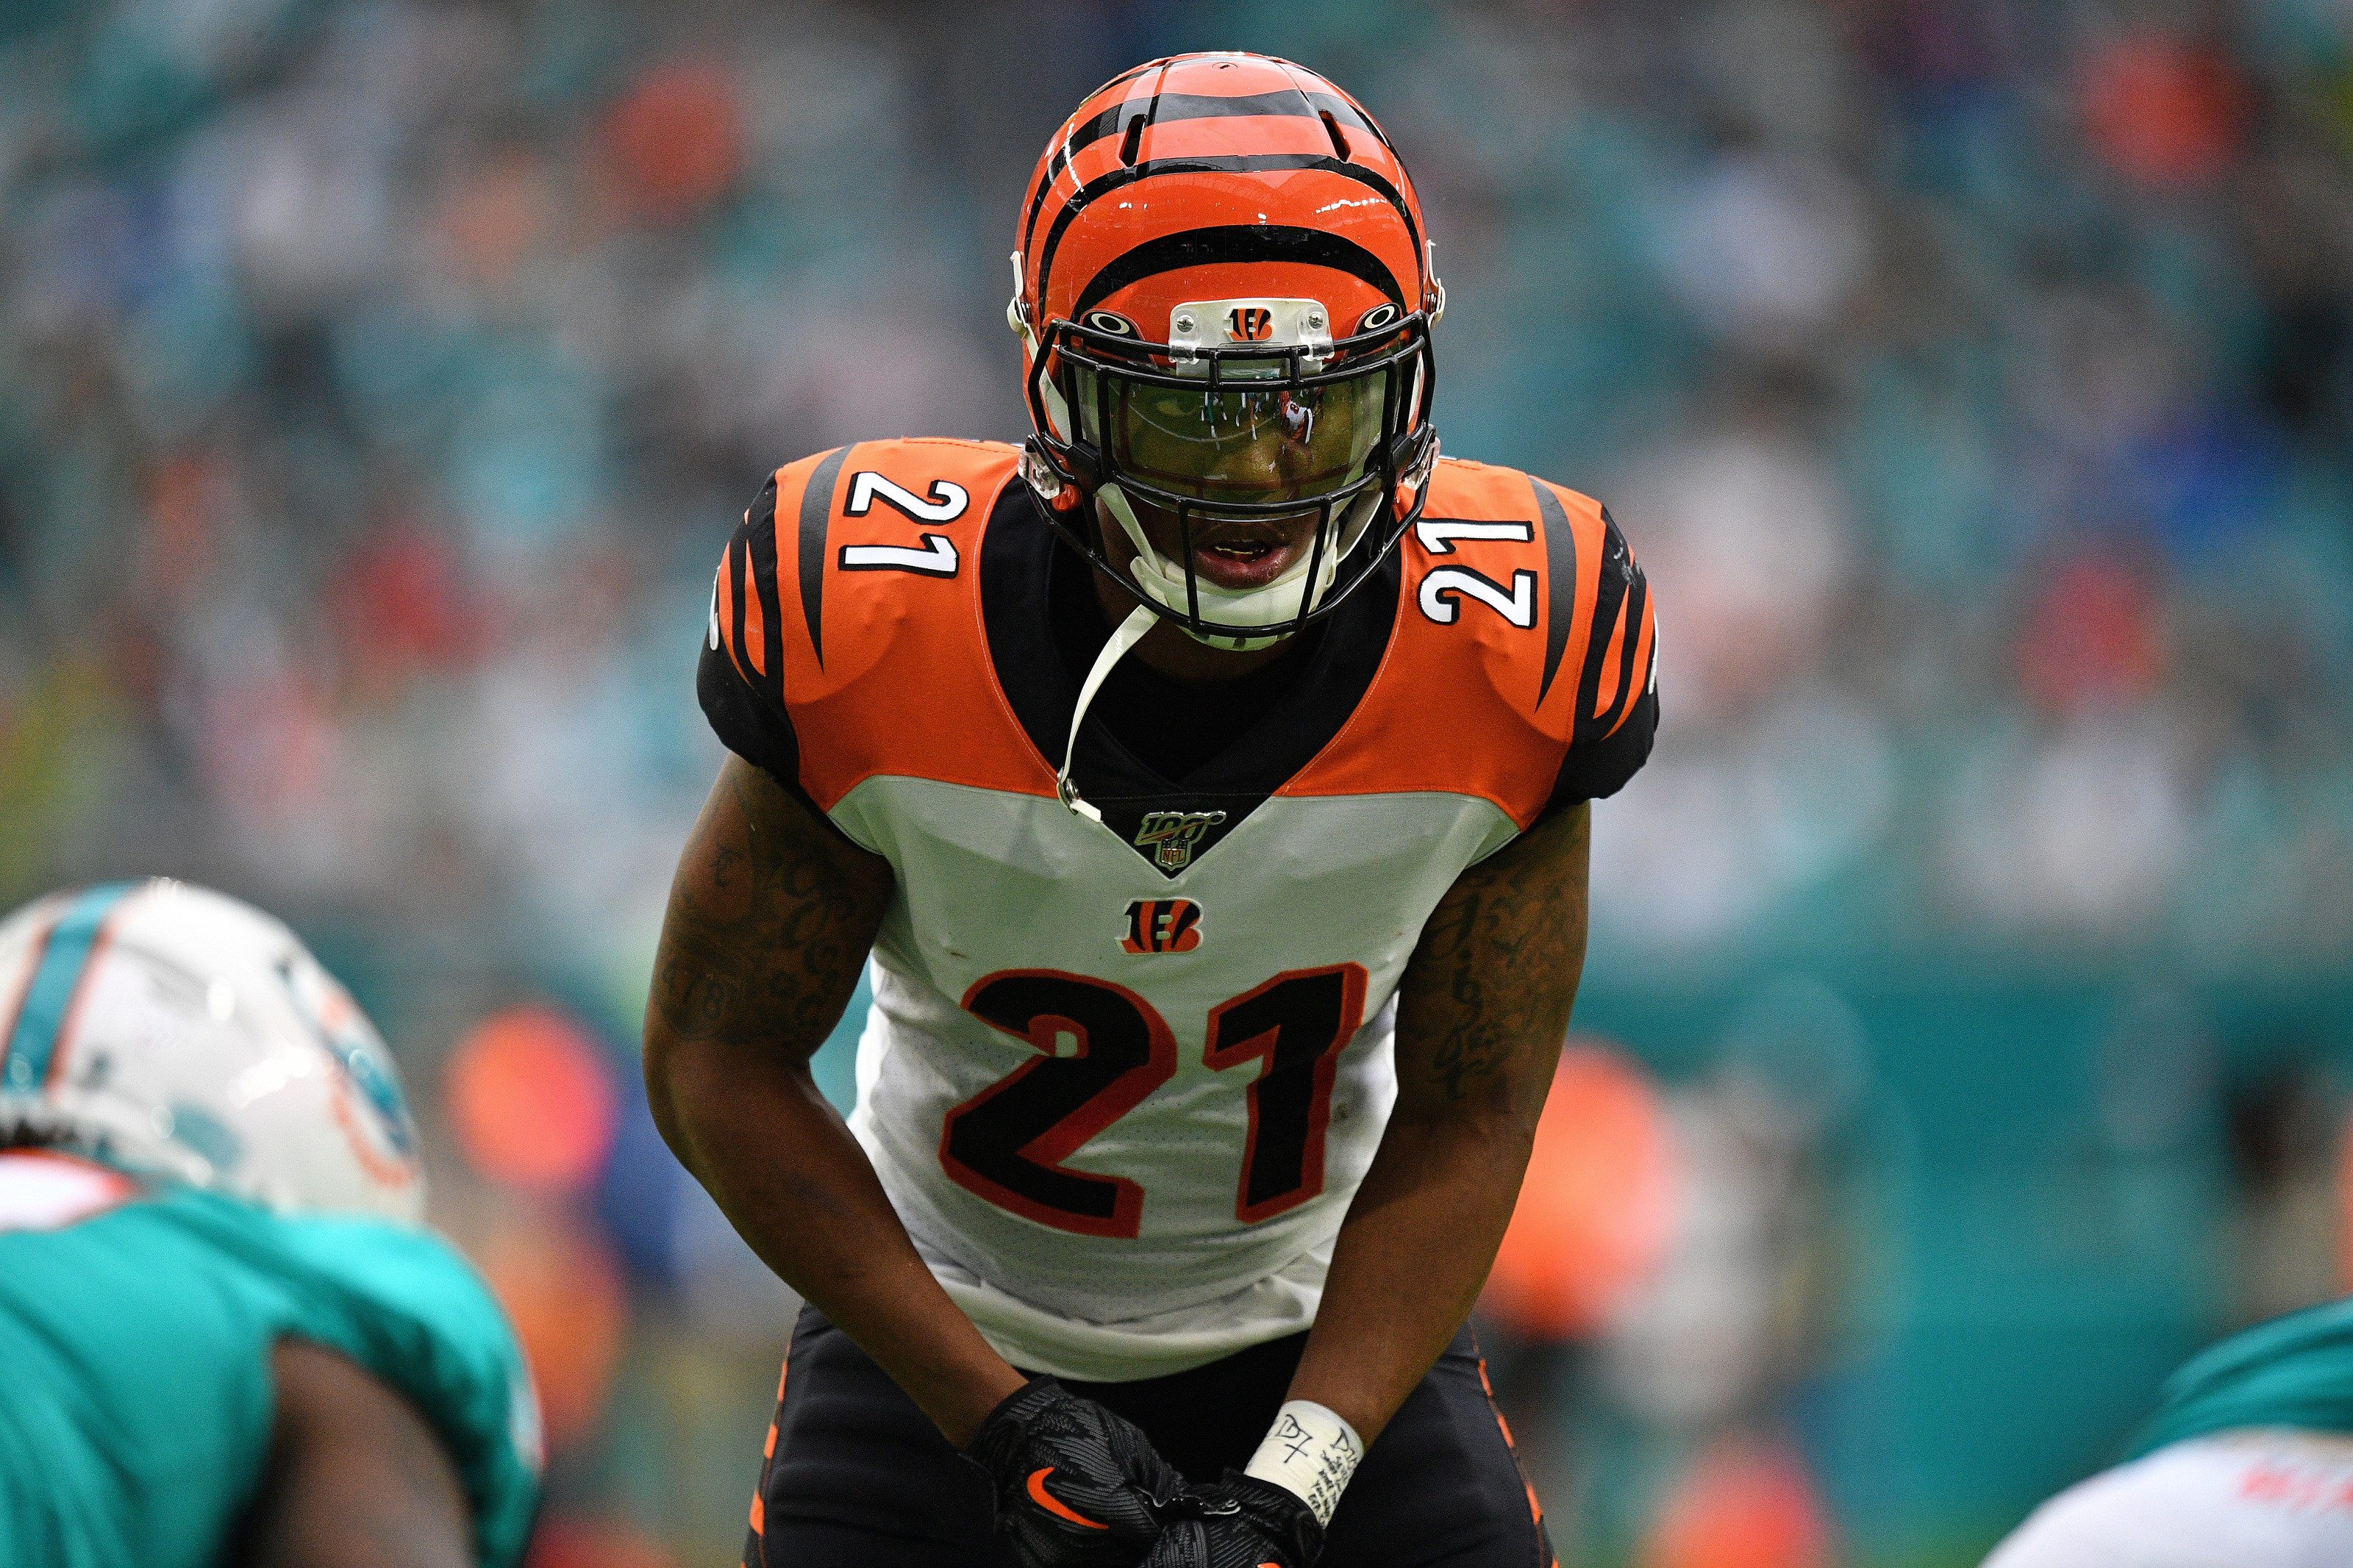 Could Darqueze Dennard become the next Vikings slot corner?